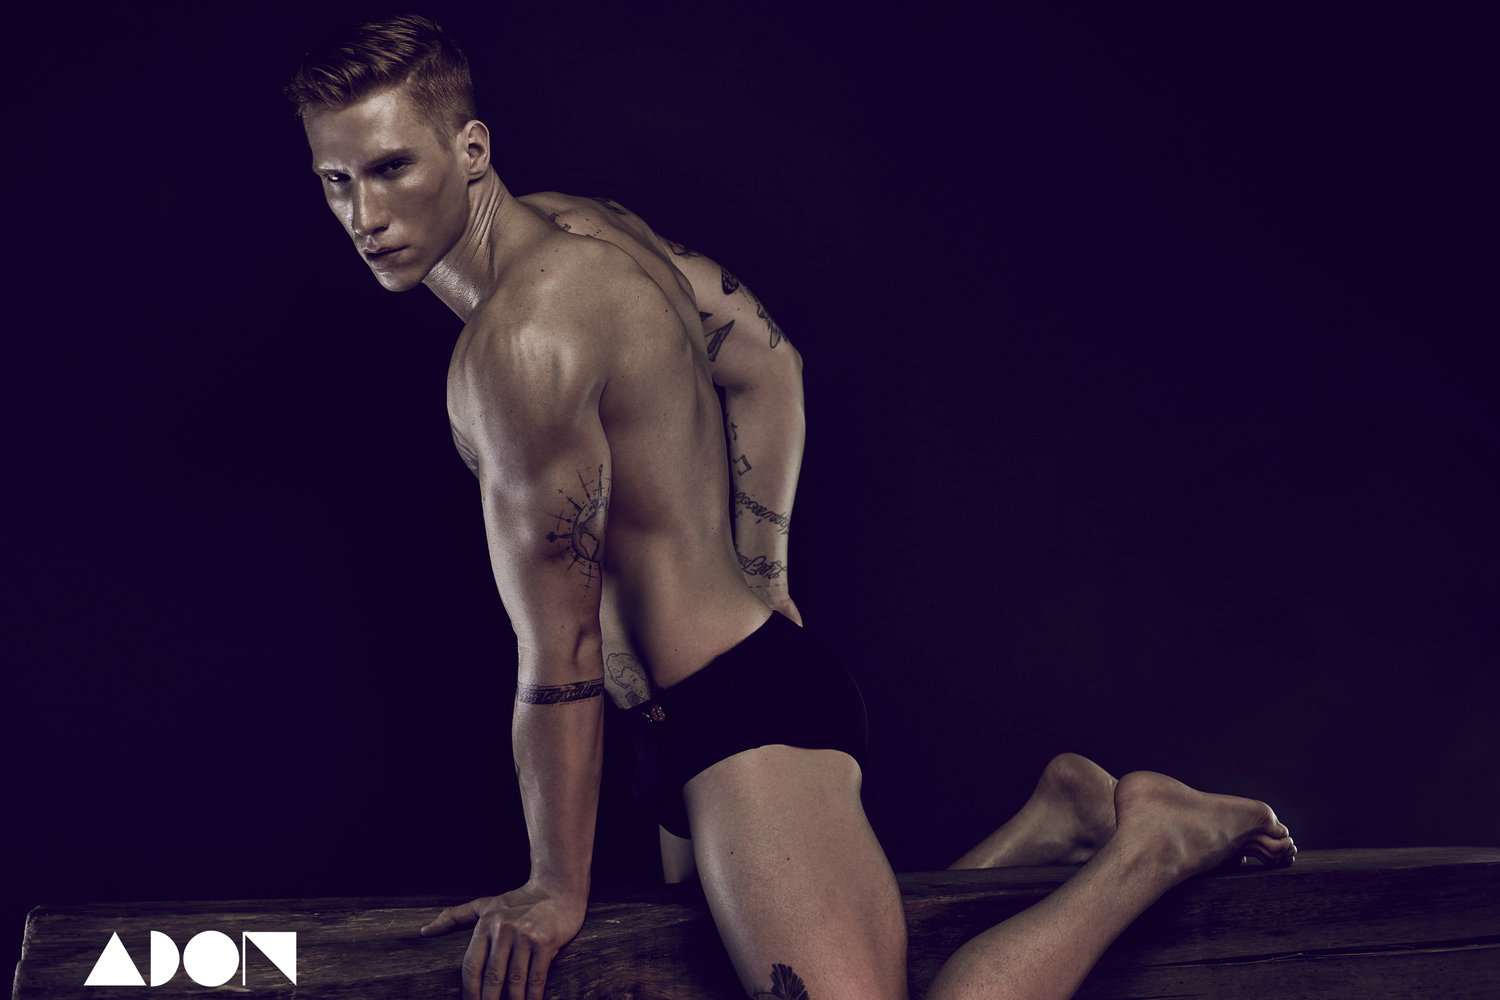 Adon Exclusive: Model DENIS WE By DANIEL JAEMS